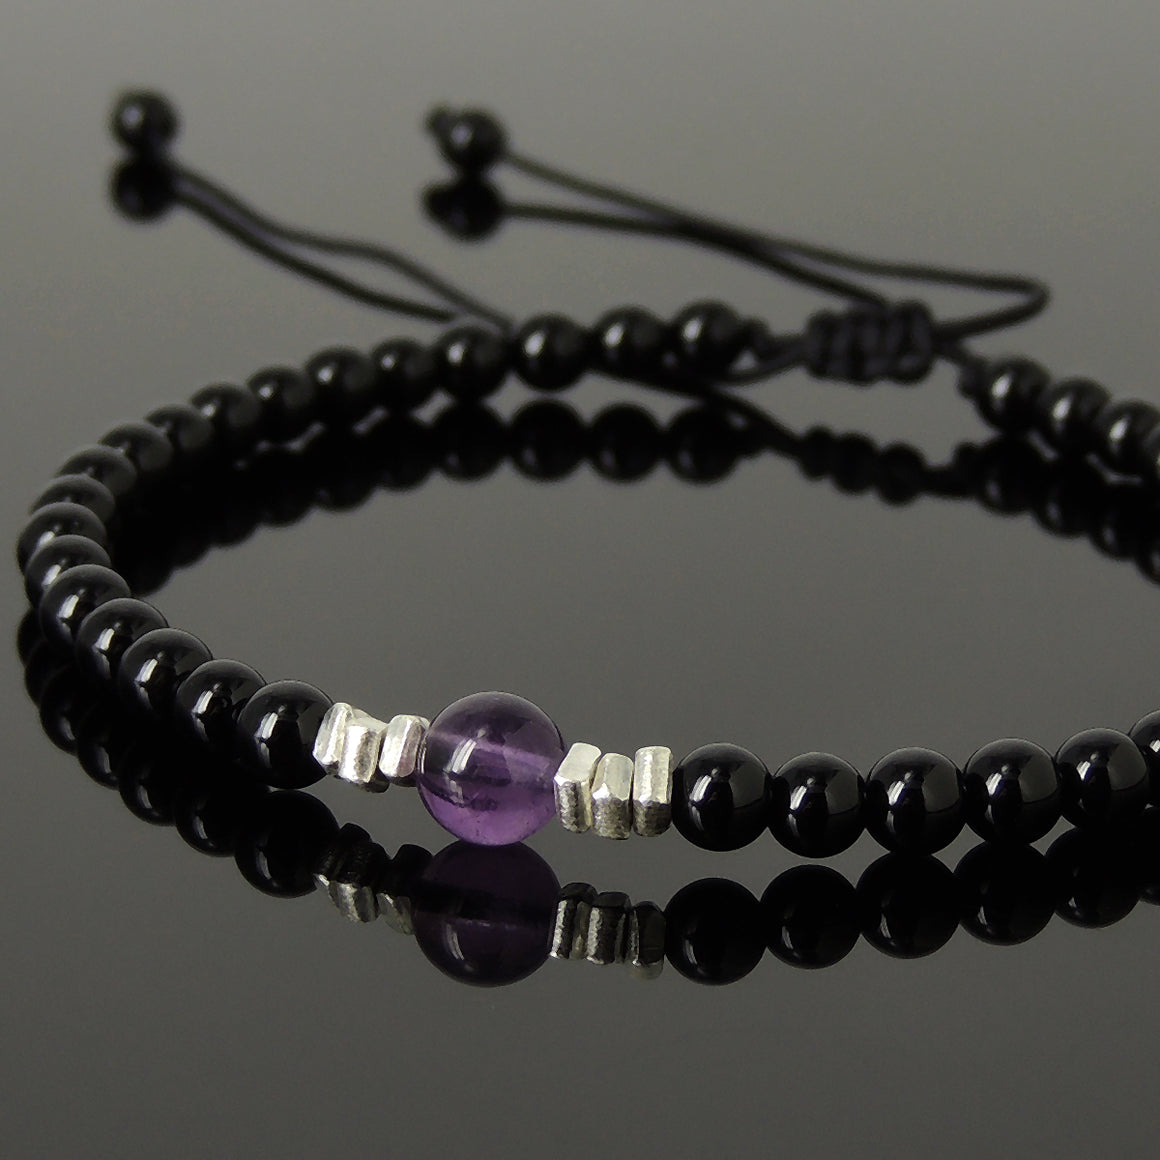 Amethyst & Bright Black Onyx Adjustable Braided Bracelet with S925 Sterling Silver Nugget Beads - Handmade by Gem & Silver BR1203